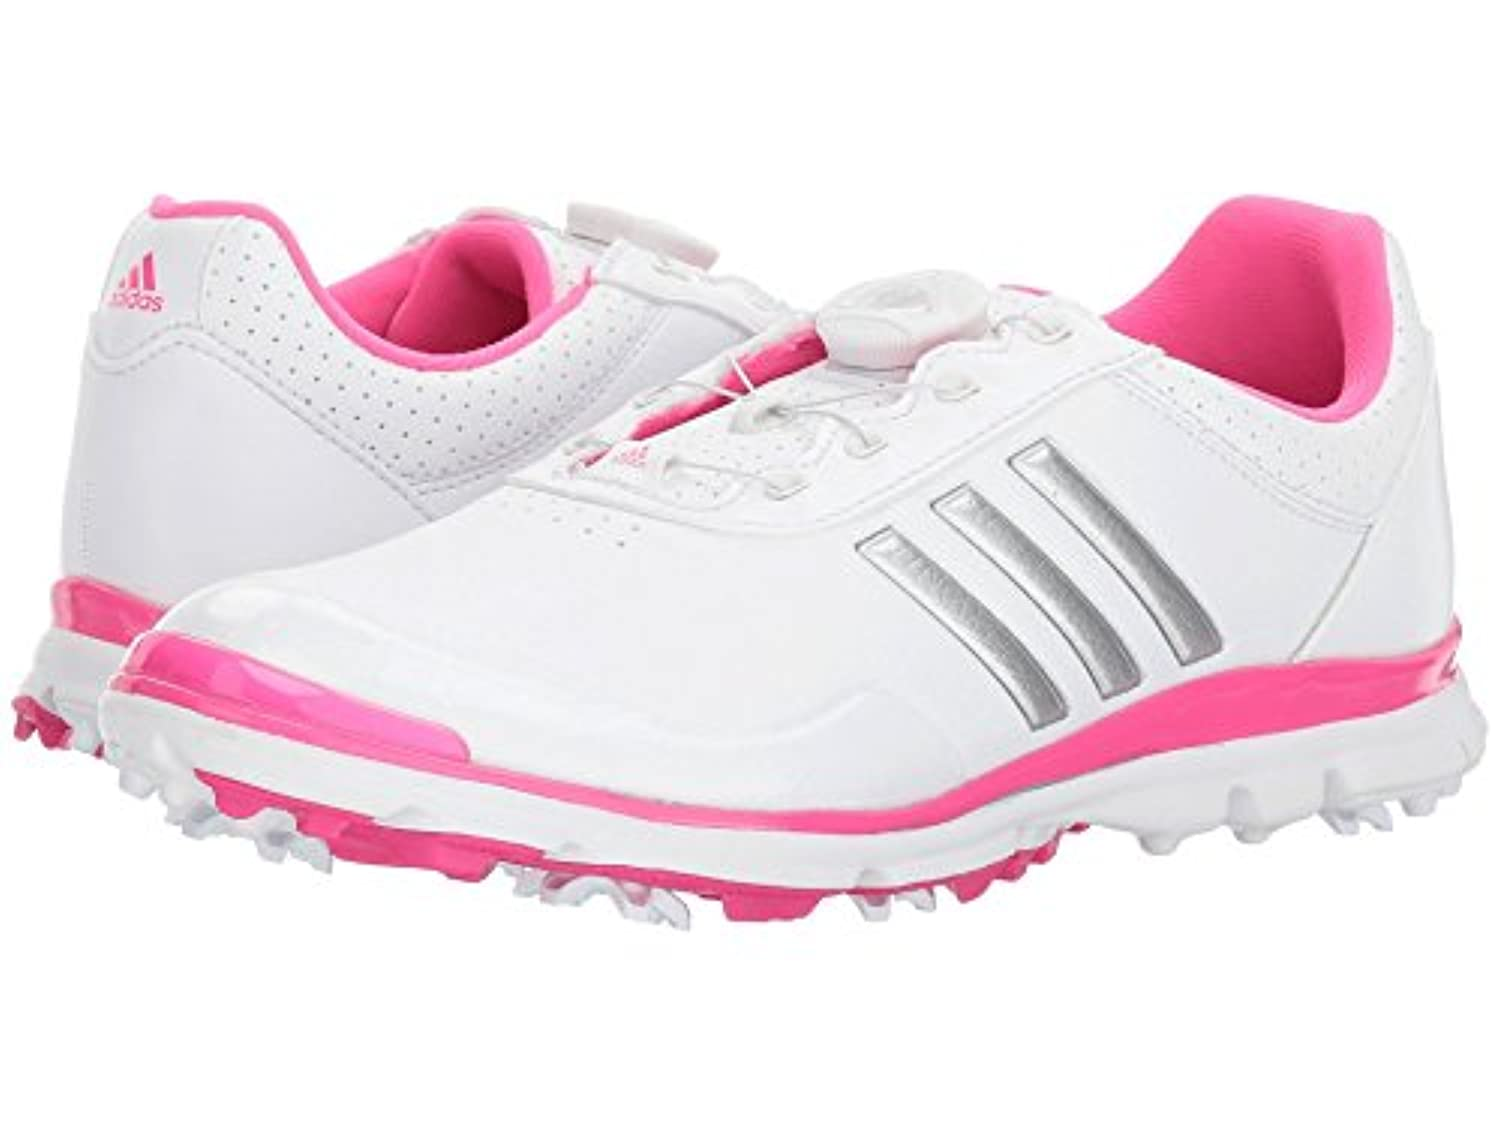 (アディダス) adidas レディースゴルフシューズ?靴 Adistar Lite Boa Footwear White/Silver Metallic/Shock Pink 8.5 (25.5cm) B - Medium